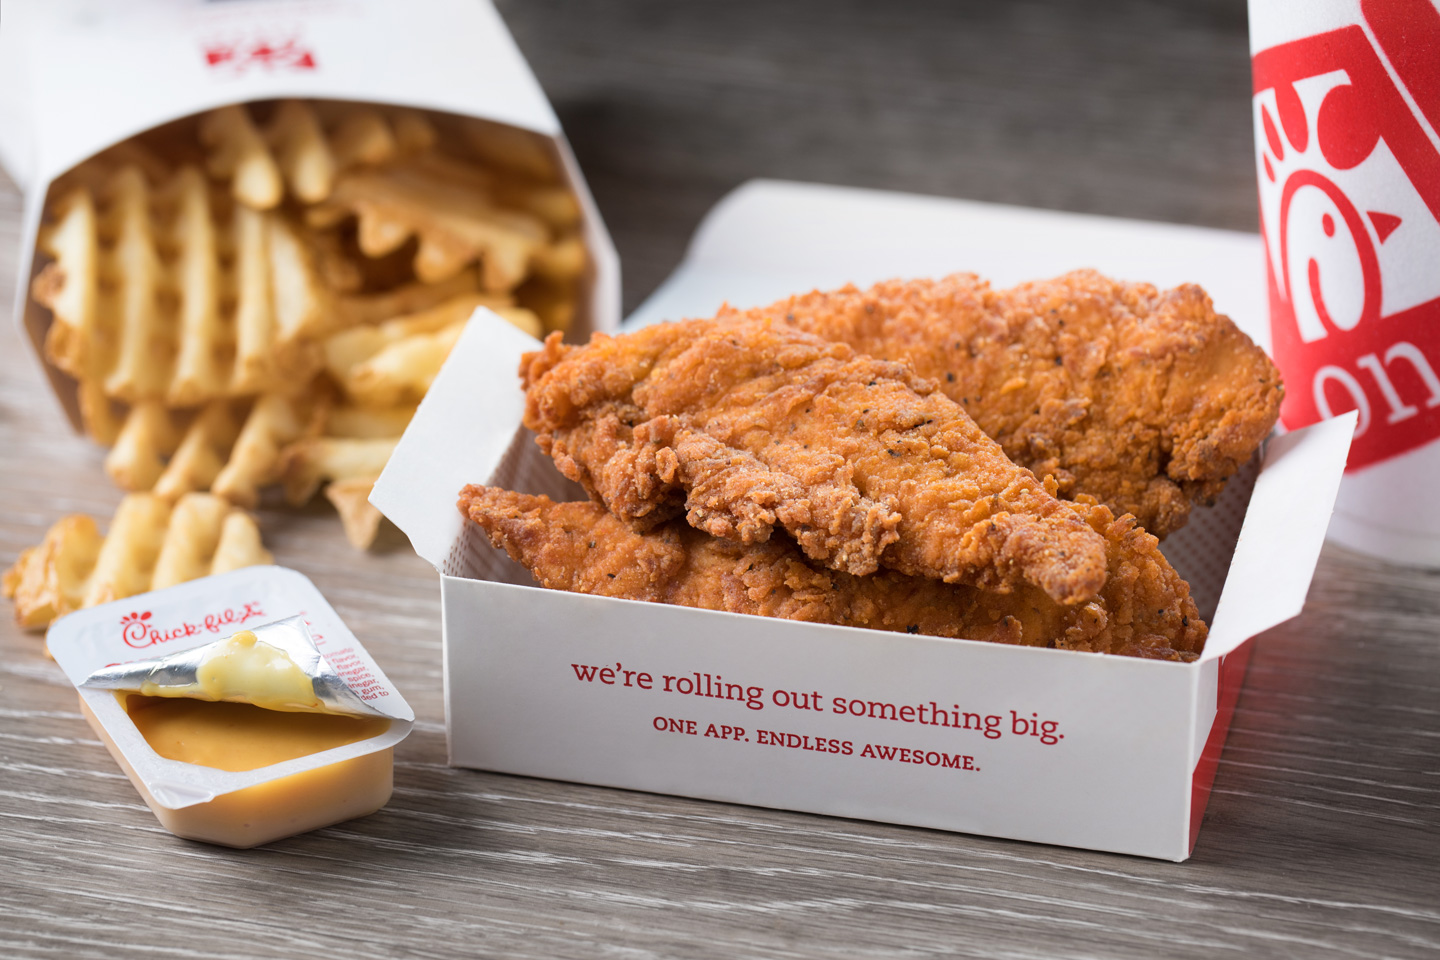 chick fil a free meal  »  7 Image »  Amazing..!